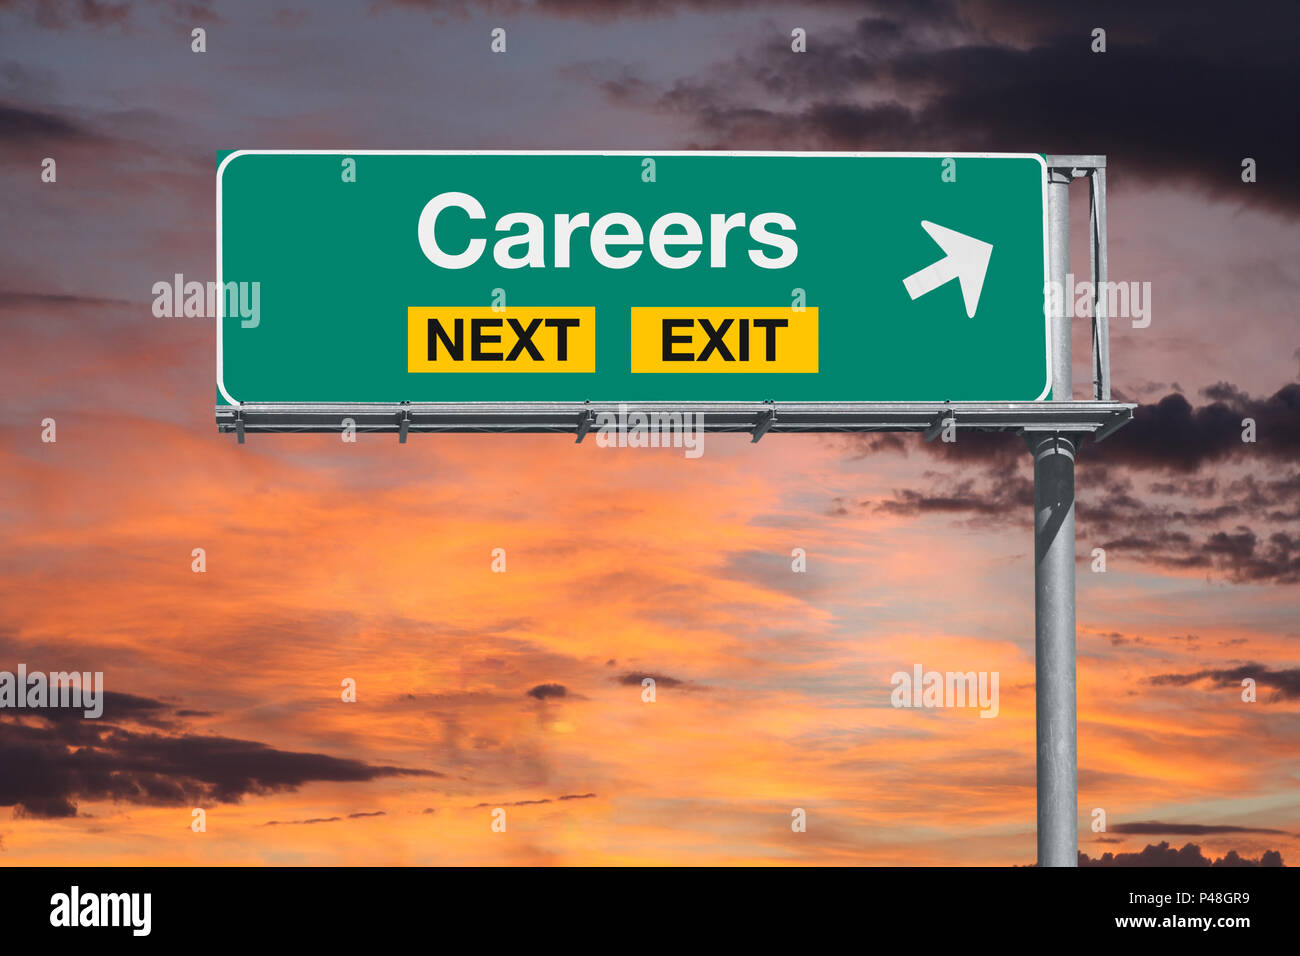 Careers next exit freeway sign with sunset sky. - Stock Image